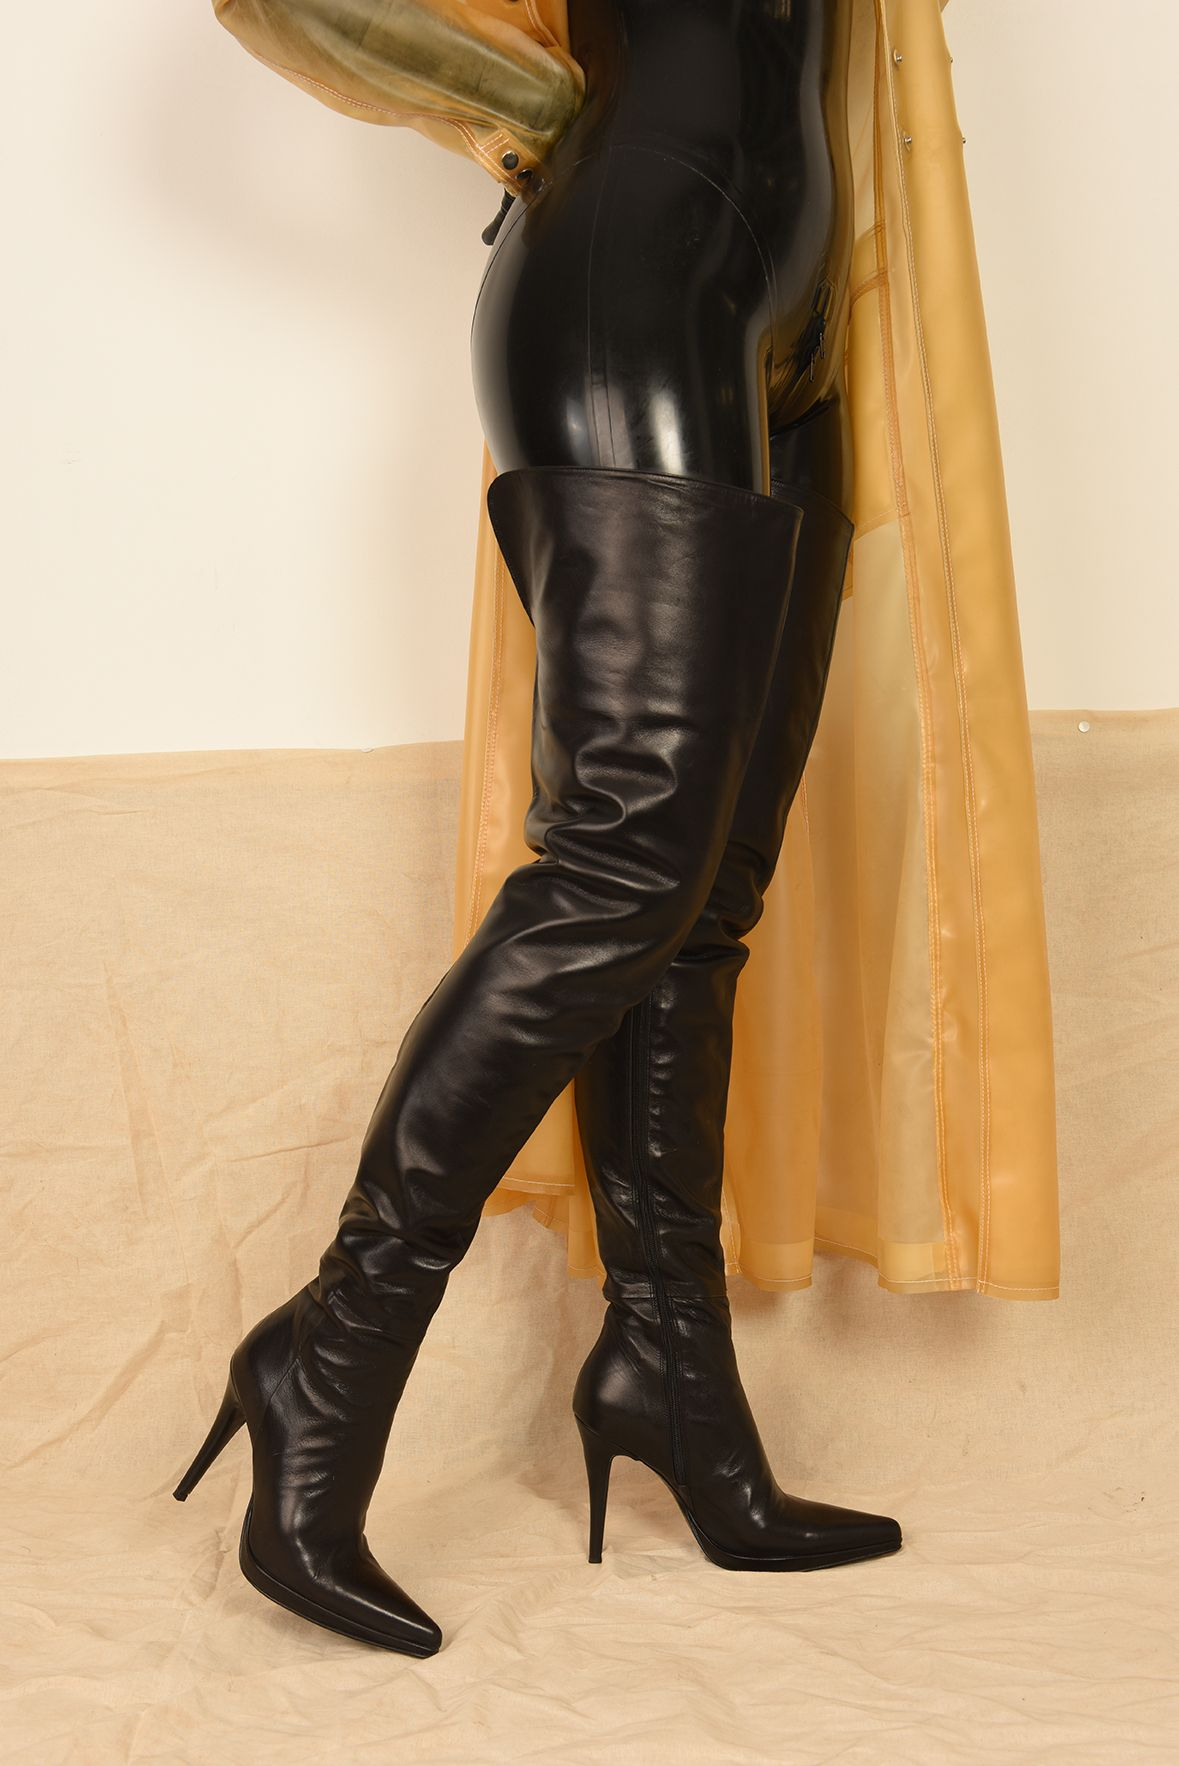 Crotch high boots | Boots, High boots, Shoe boots